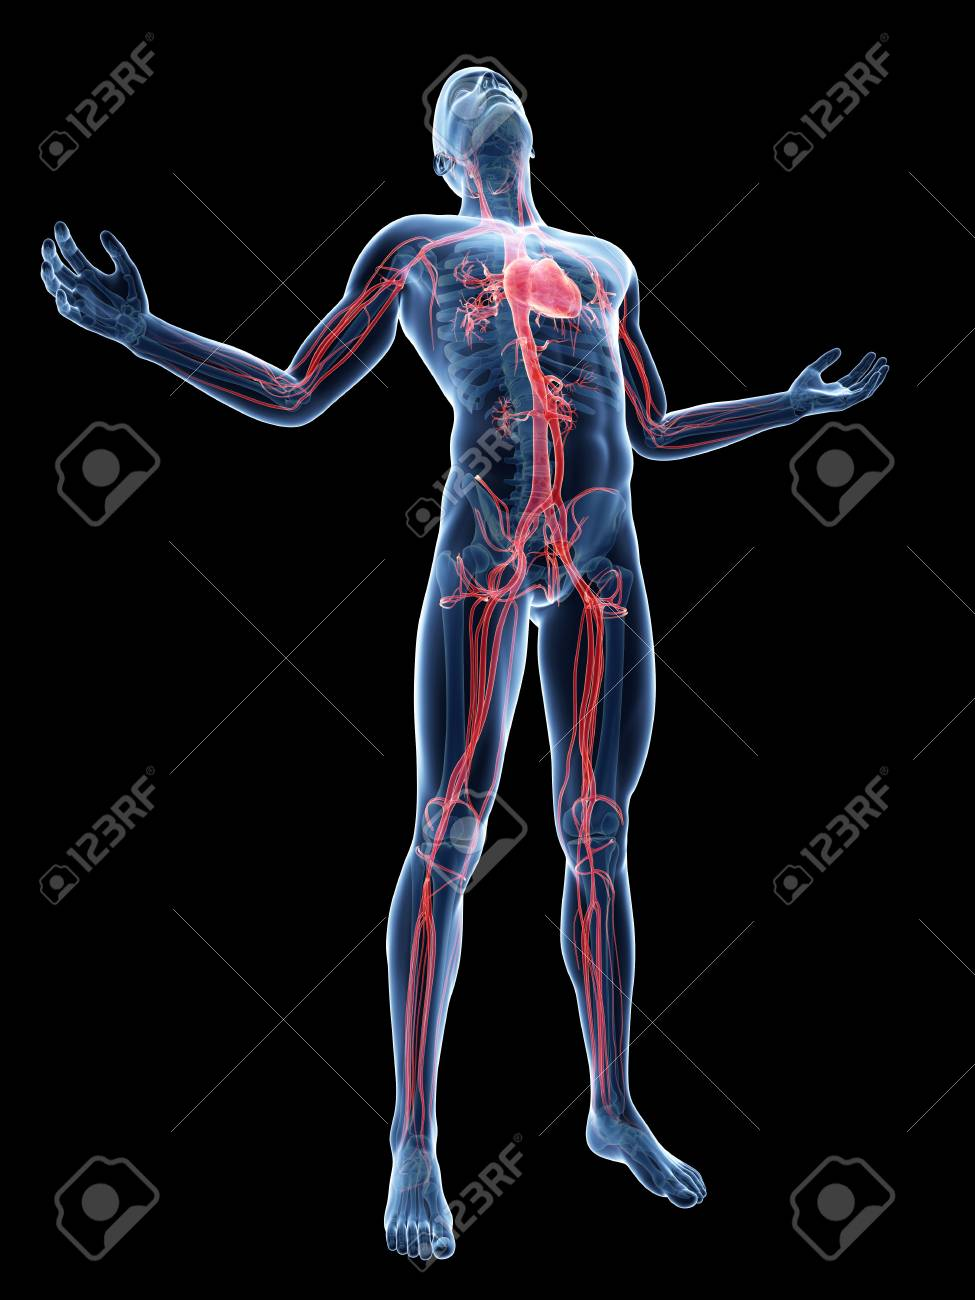 Human Vascular System, Illustration Stock Photo, Picture And Royalty ...